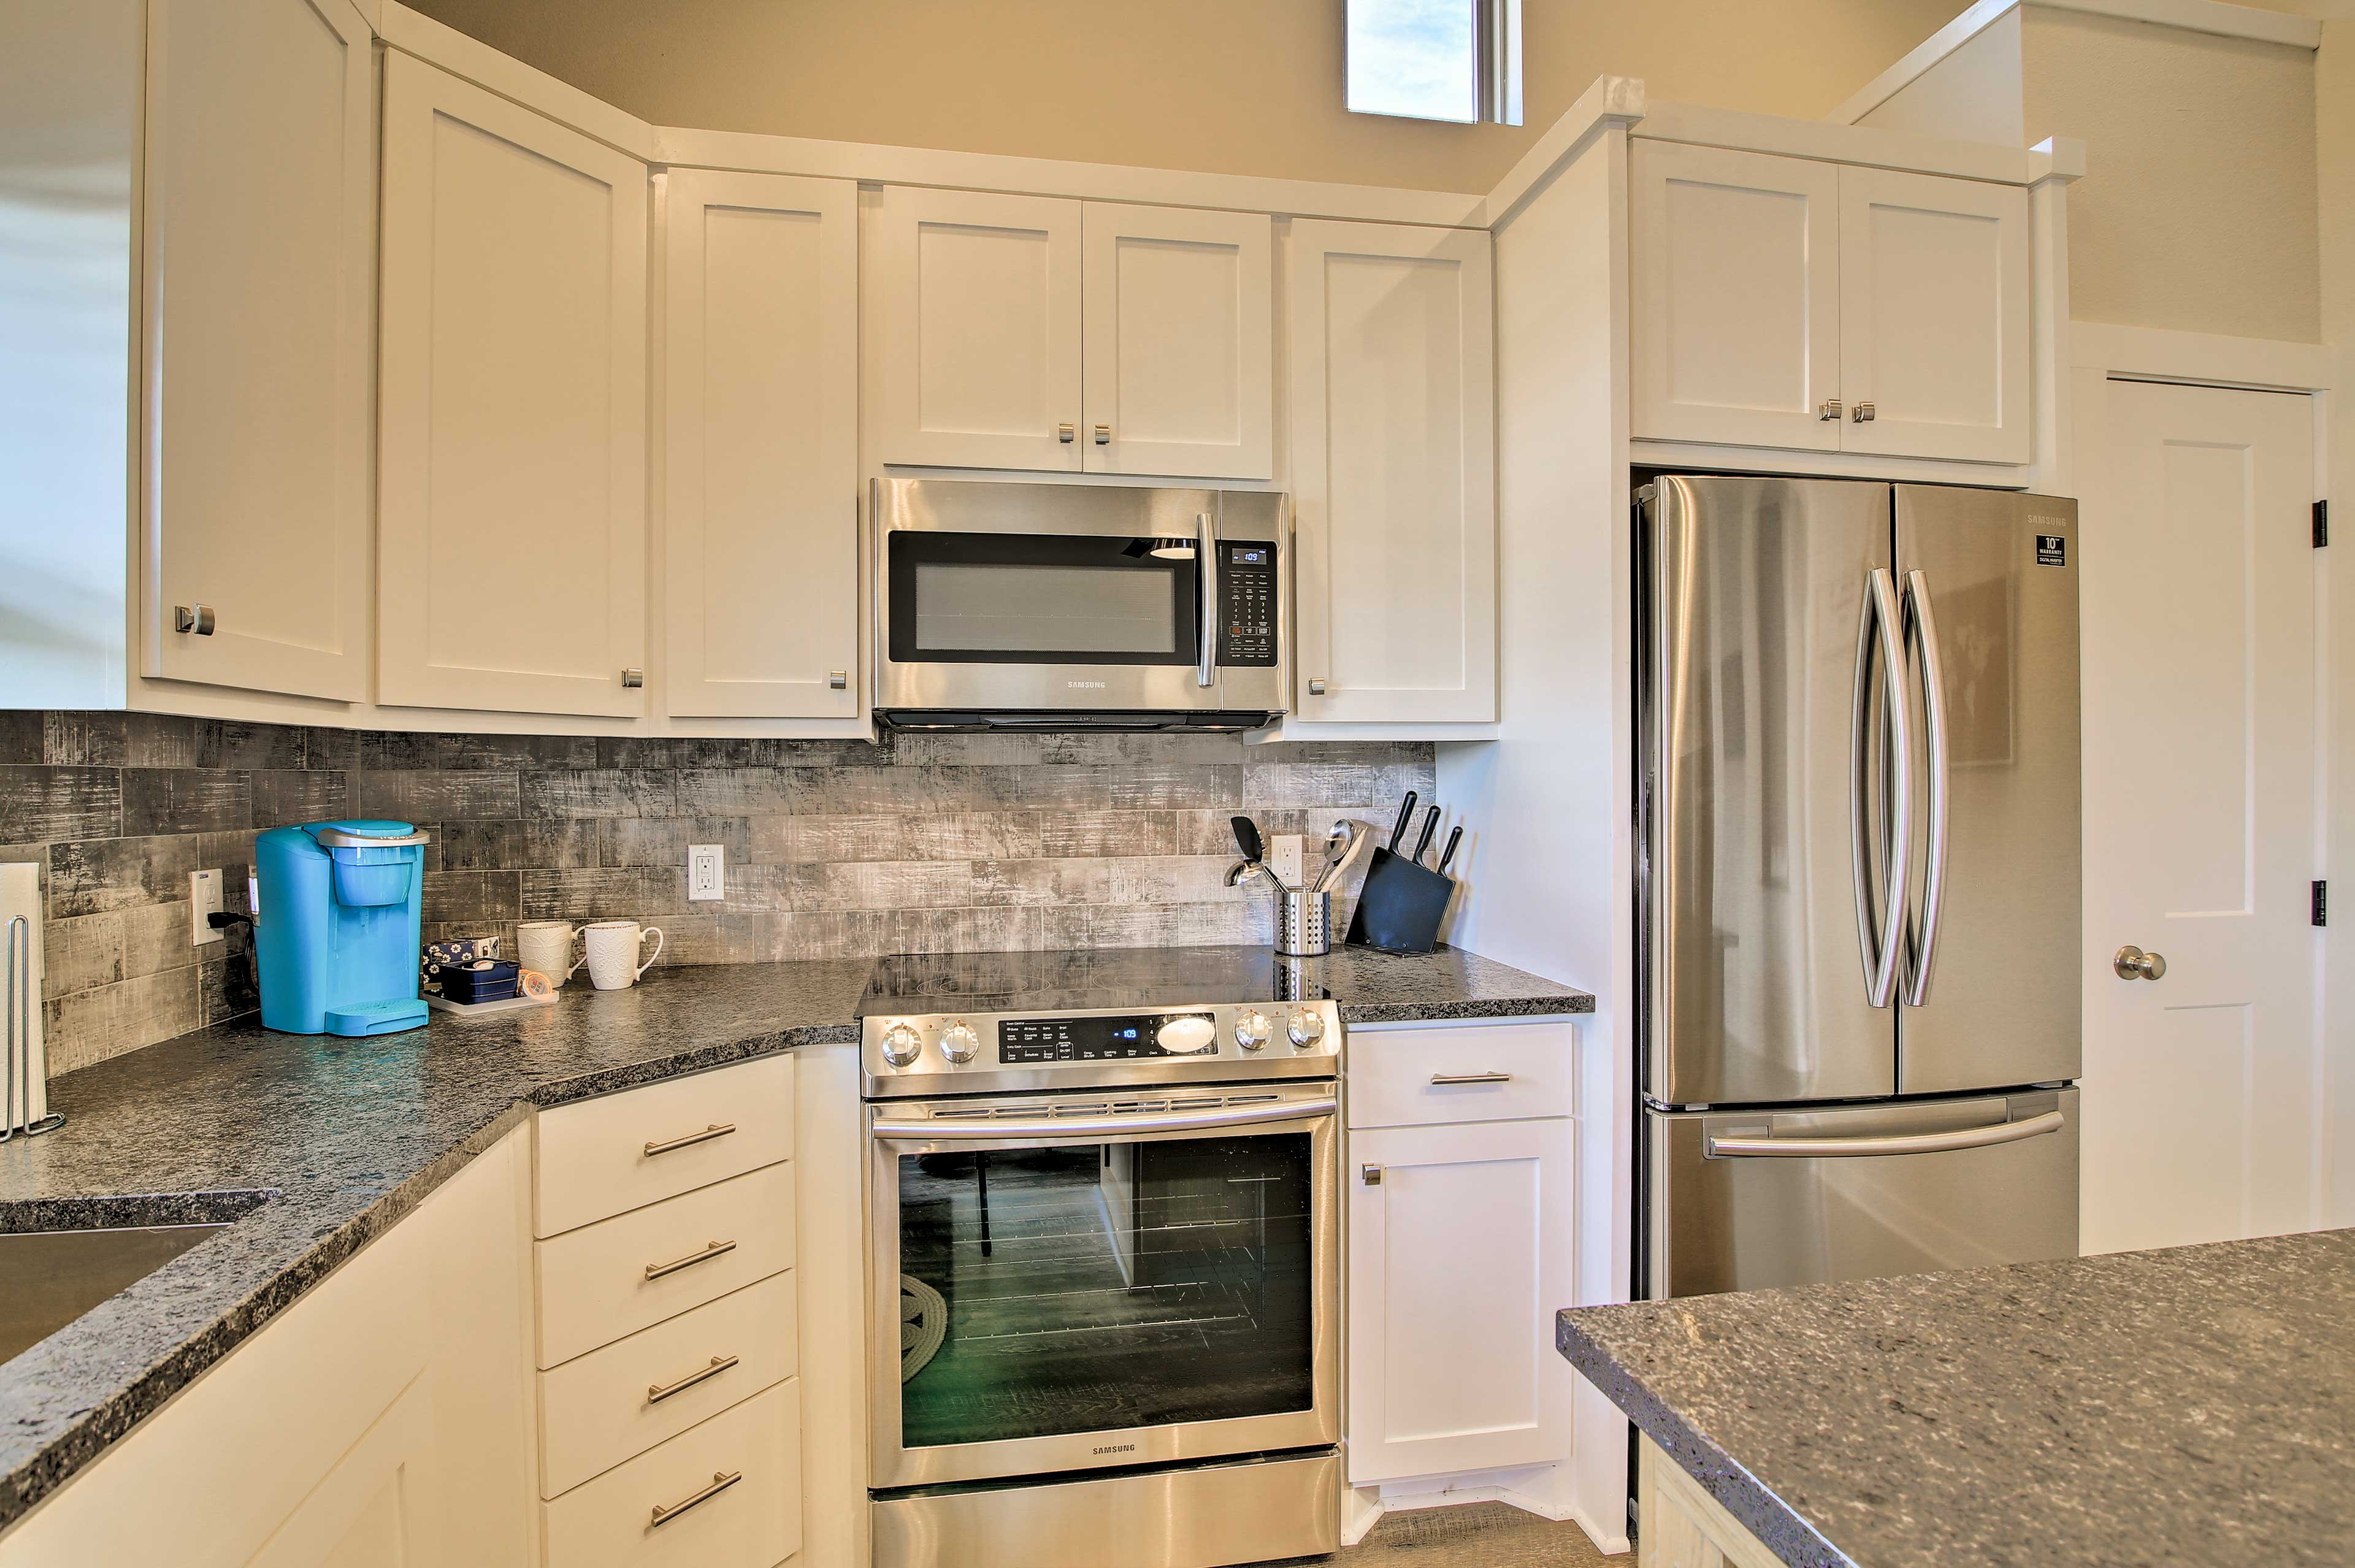 You'll have plenty of stainless steel appliances and cooking utensils.